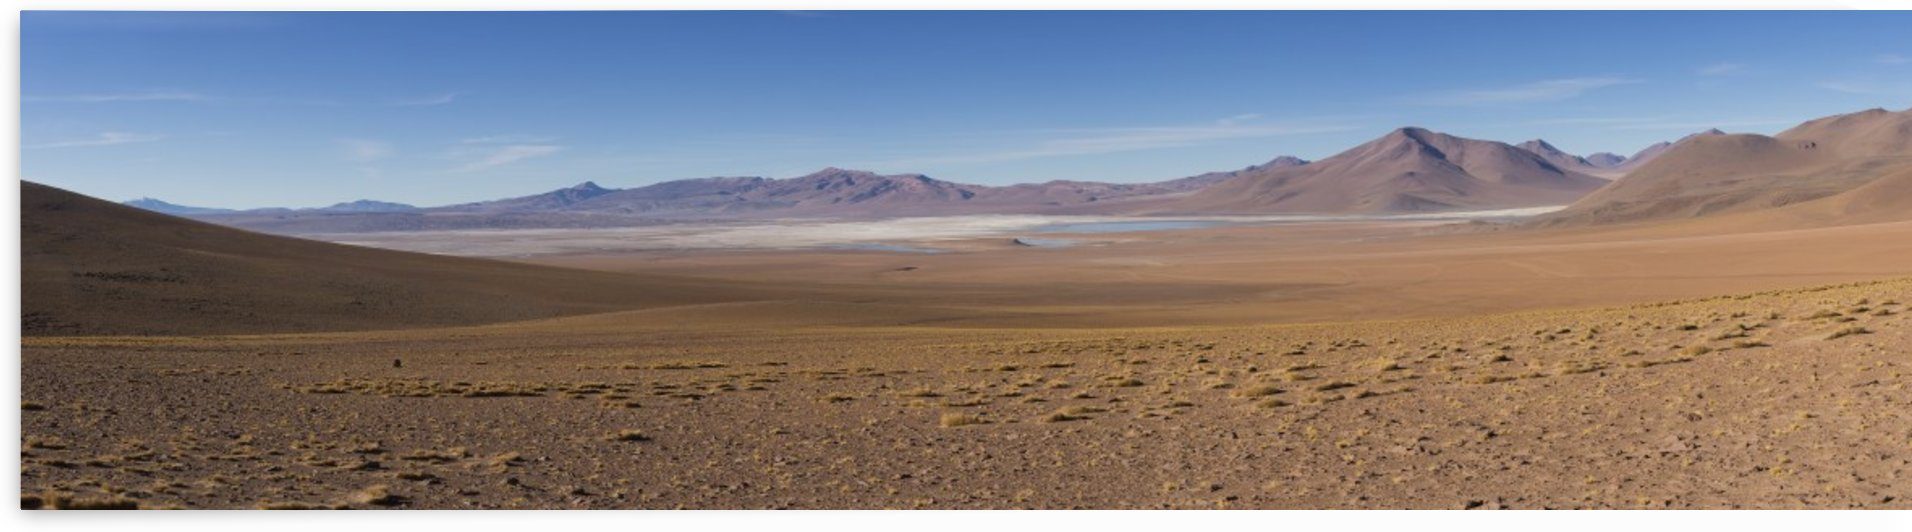 The surreal landscape of Bolivia's Altiplano region near Uyuni; Bolivia by PacificStock